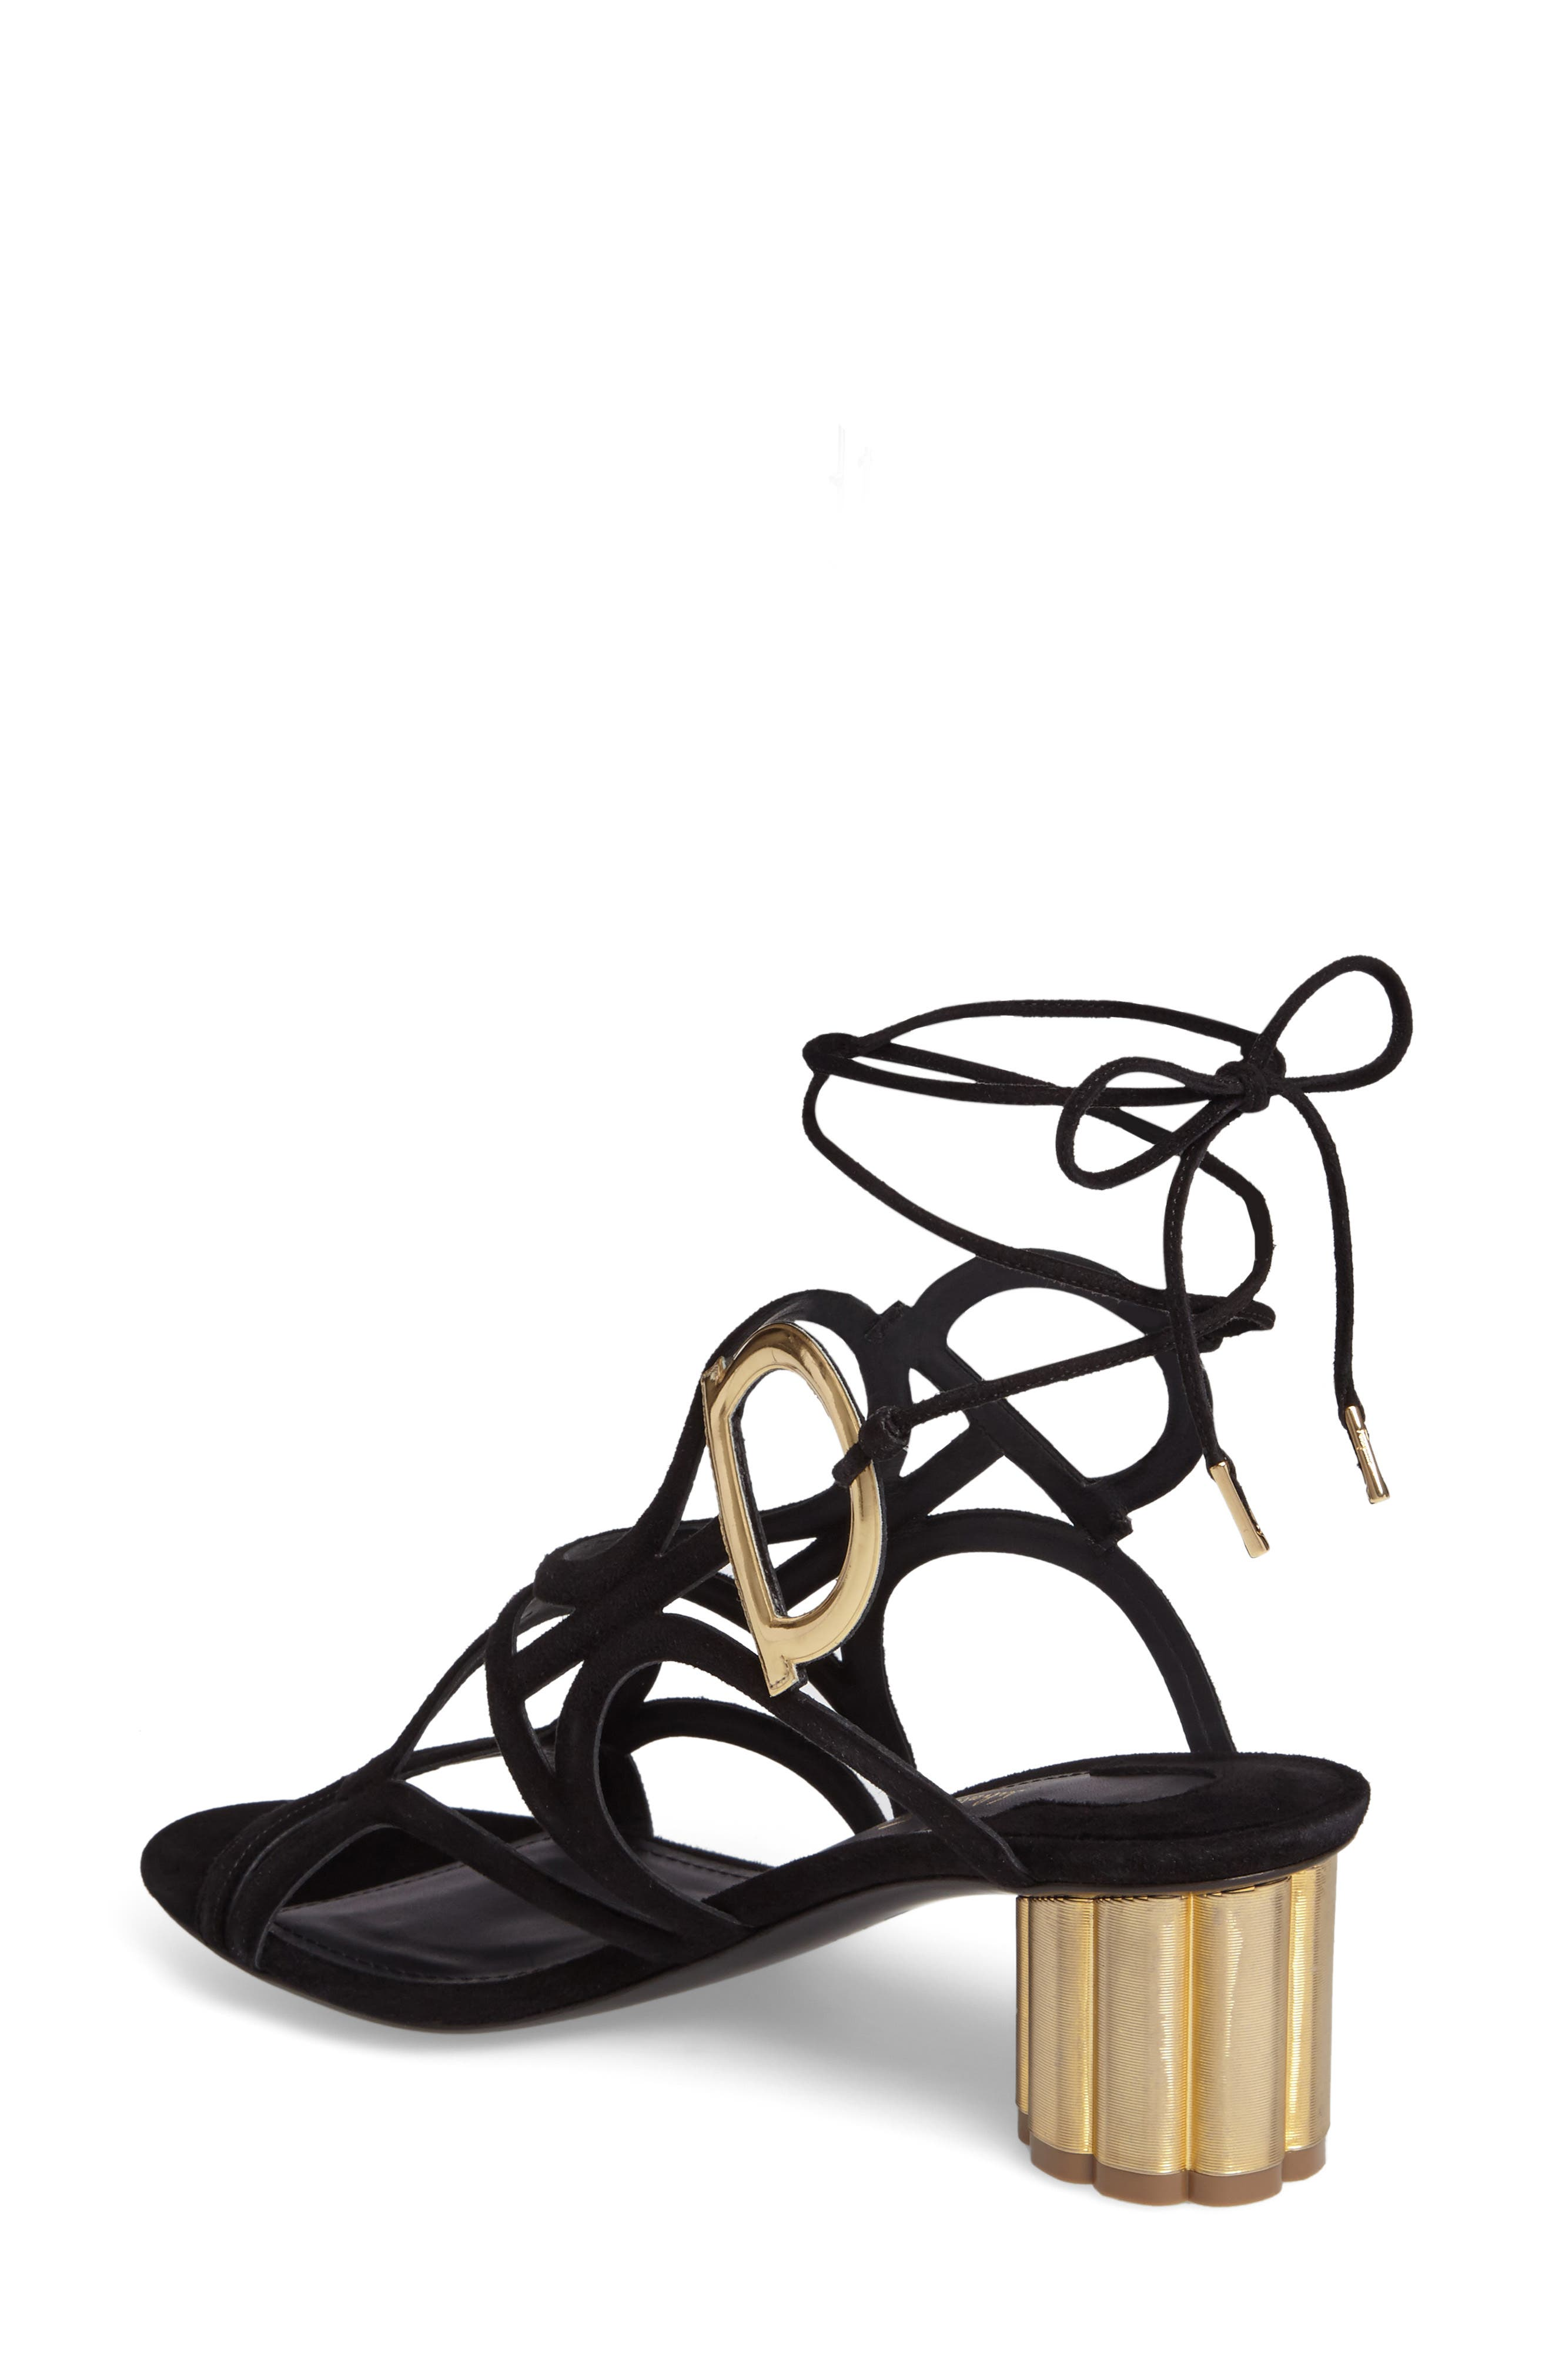 Vinci Lace-Up Block Heel Sandal,                             Alternate thumbnail 2, color,                             BLACK SUEDE